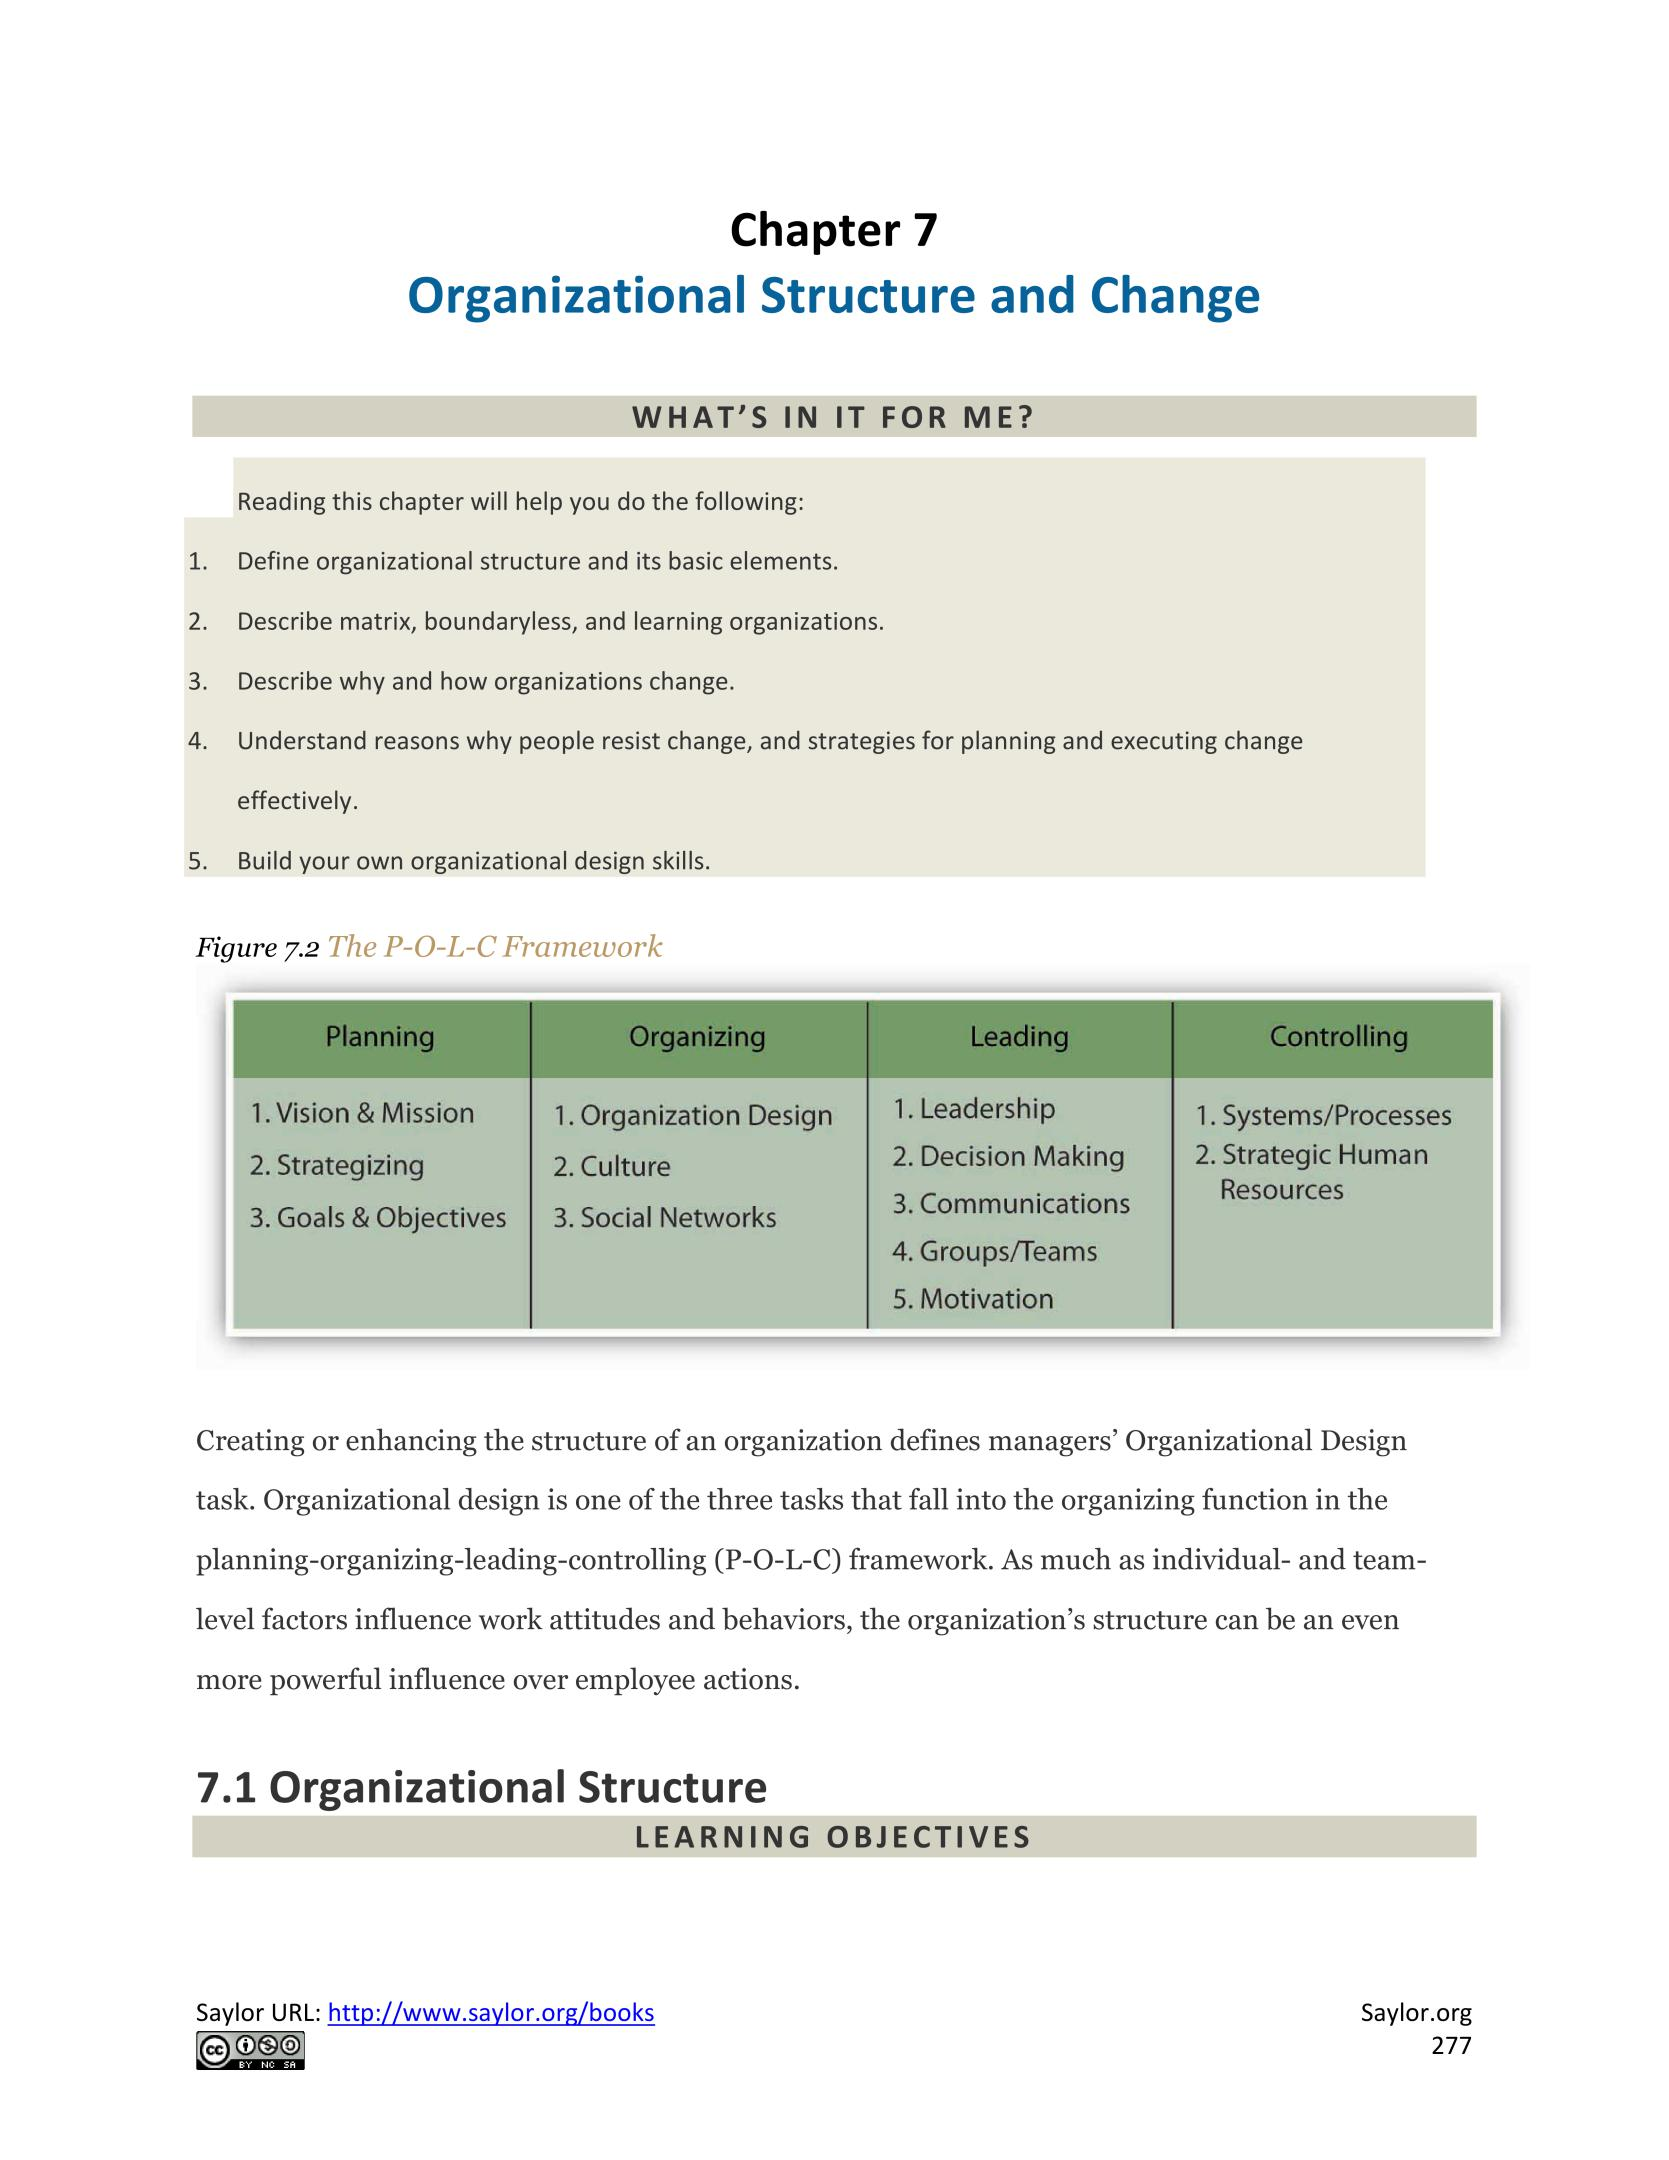 the factors that influence organizational structure